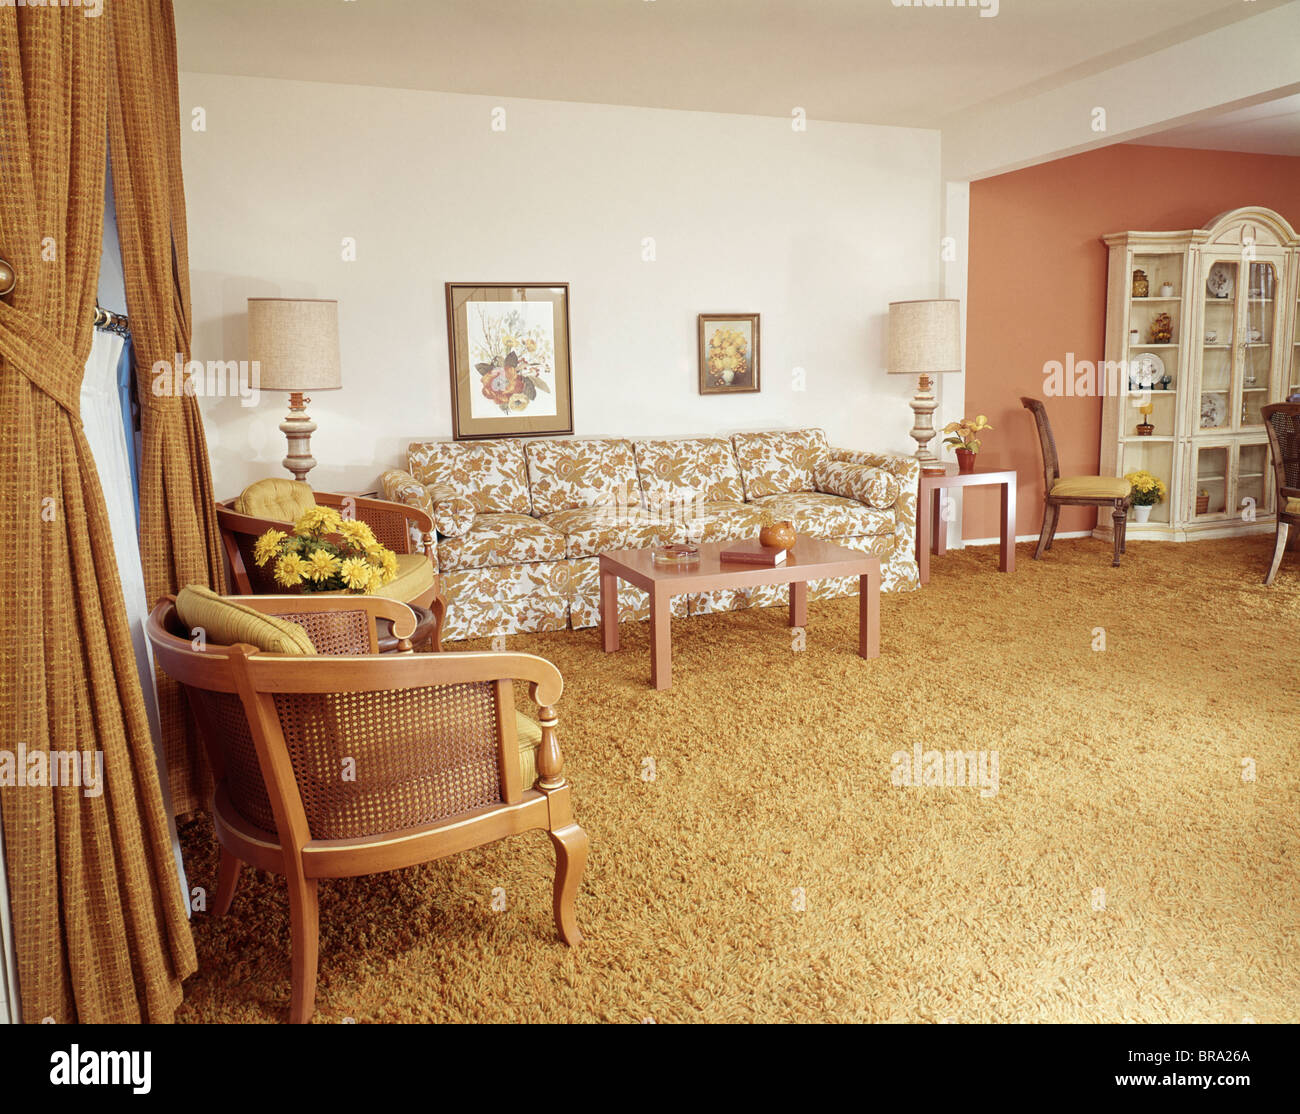 1970s ORANGE AND YELLOW LIVING ROOM INTERIOR   Stock Image